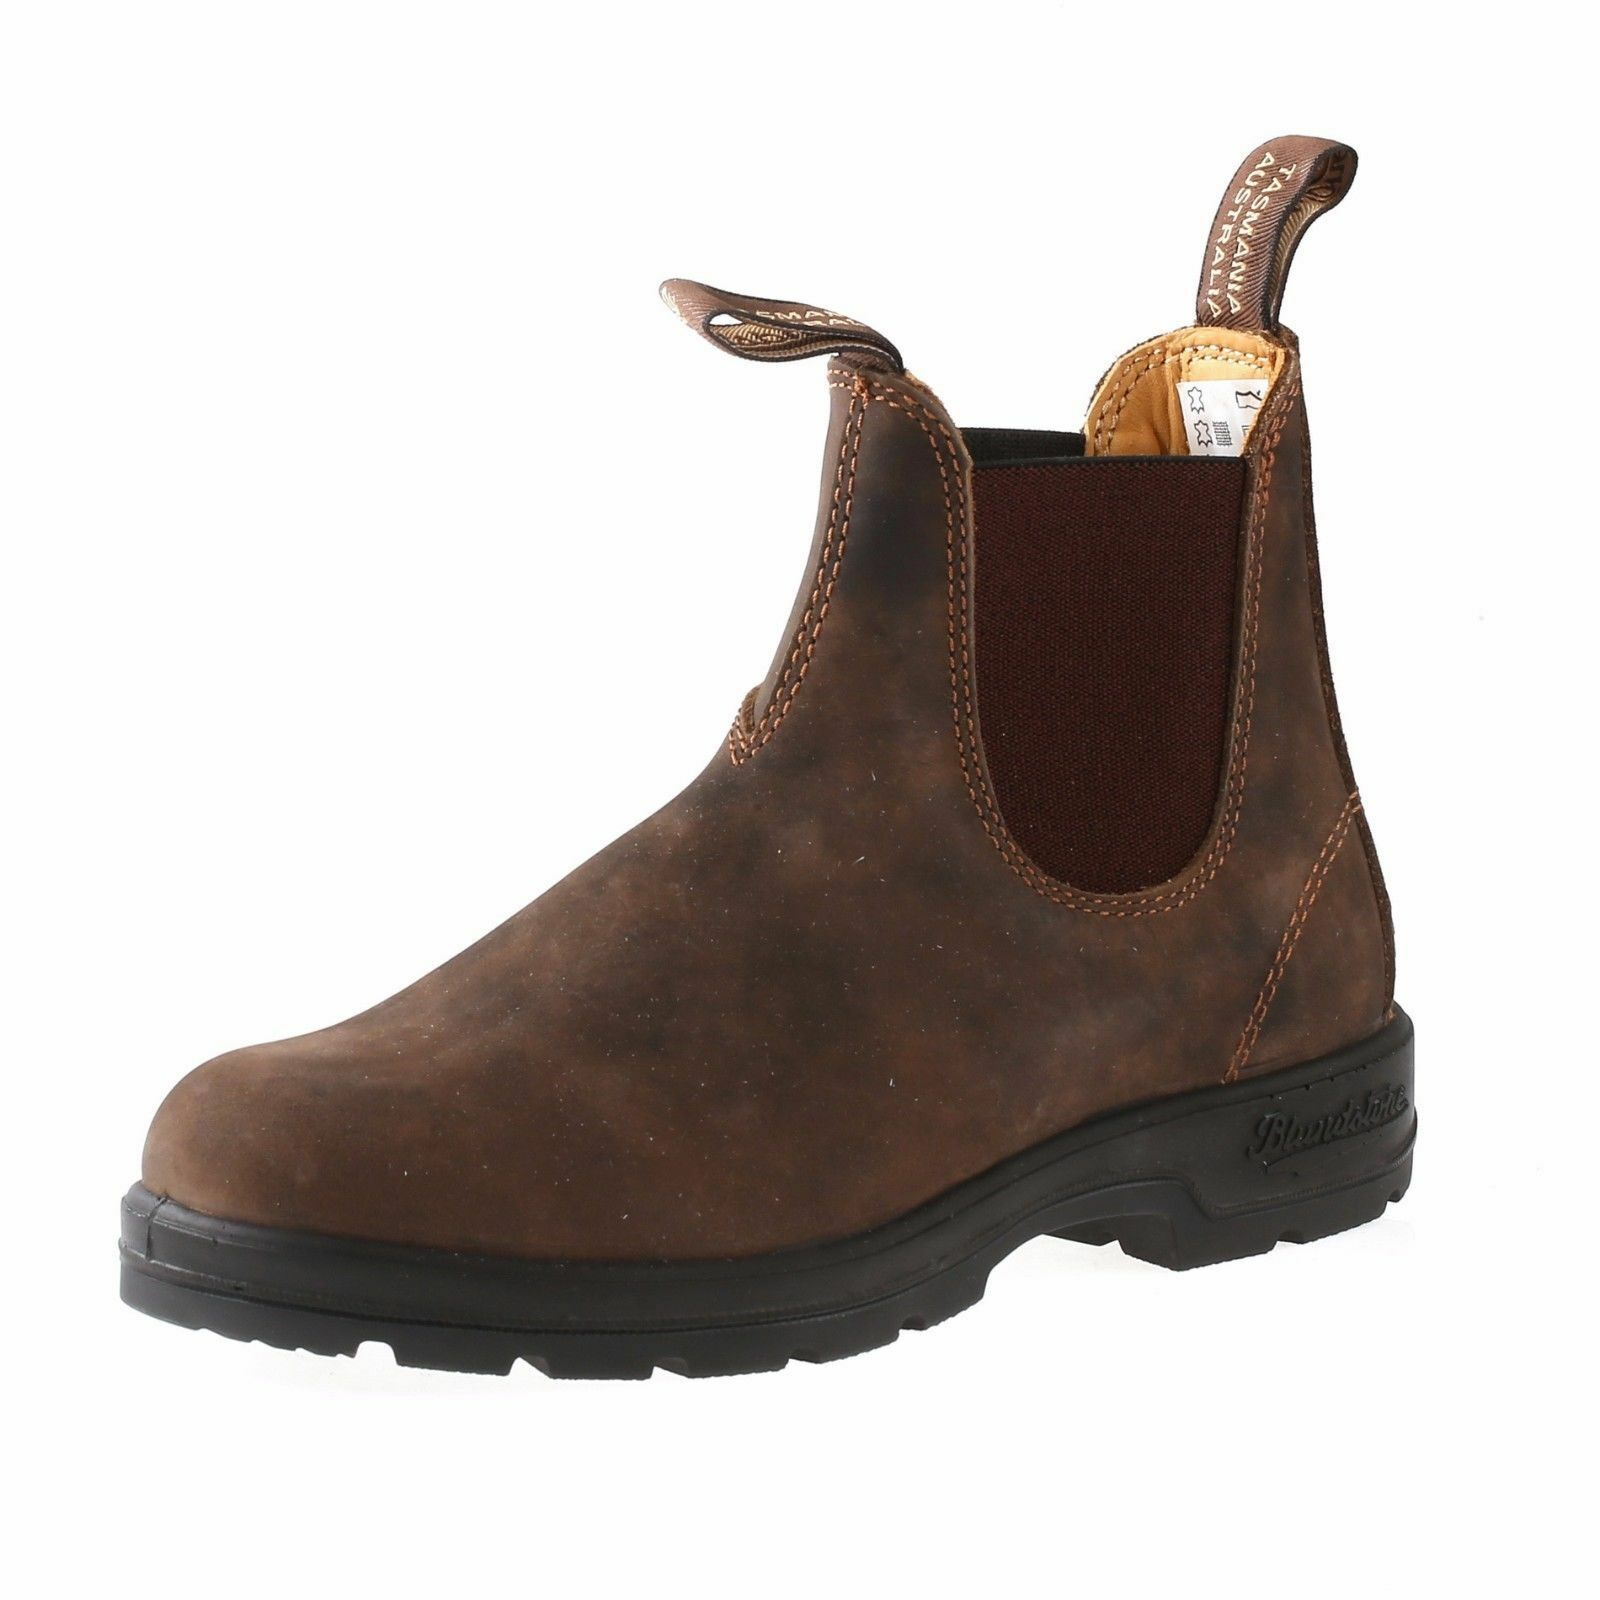 NEW Blundstone Style 585 Rustic Brown Leather Boots For  Men 1